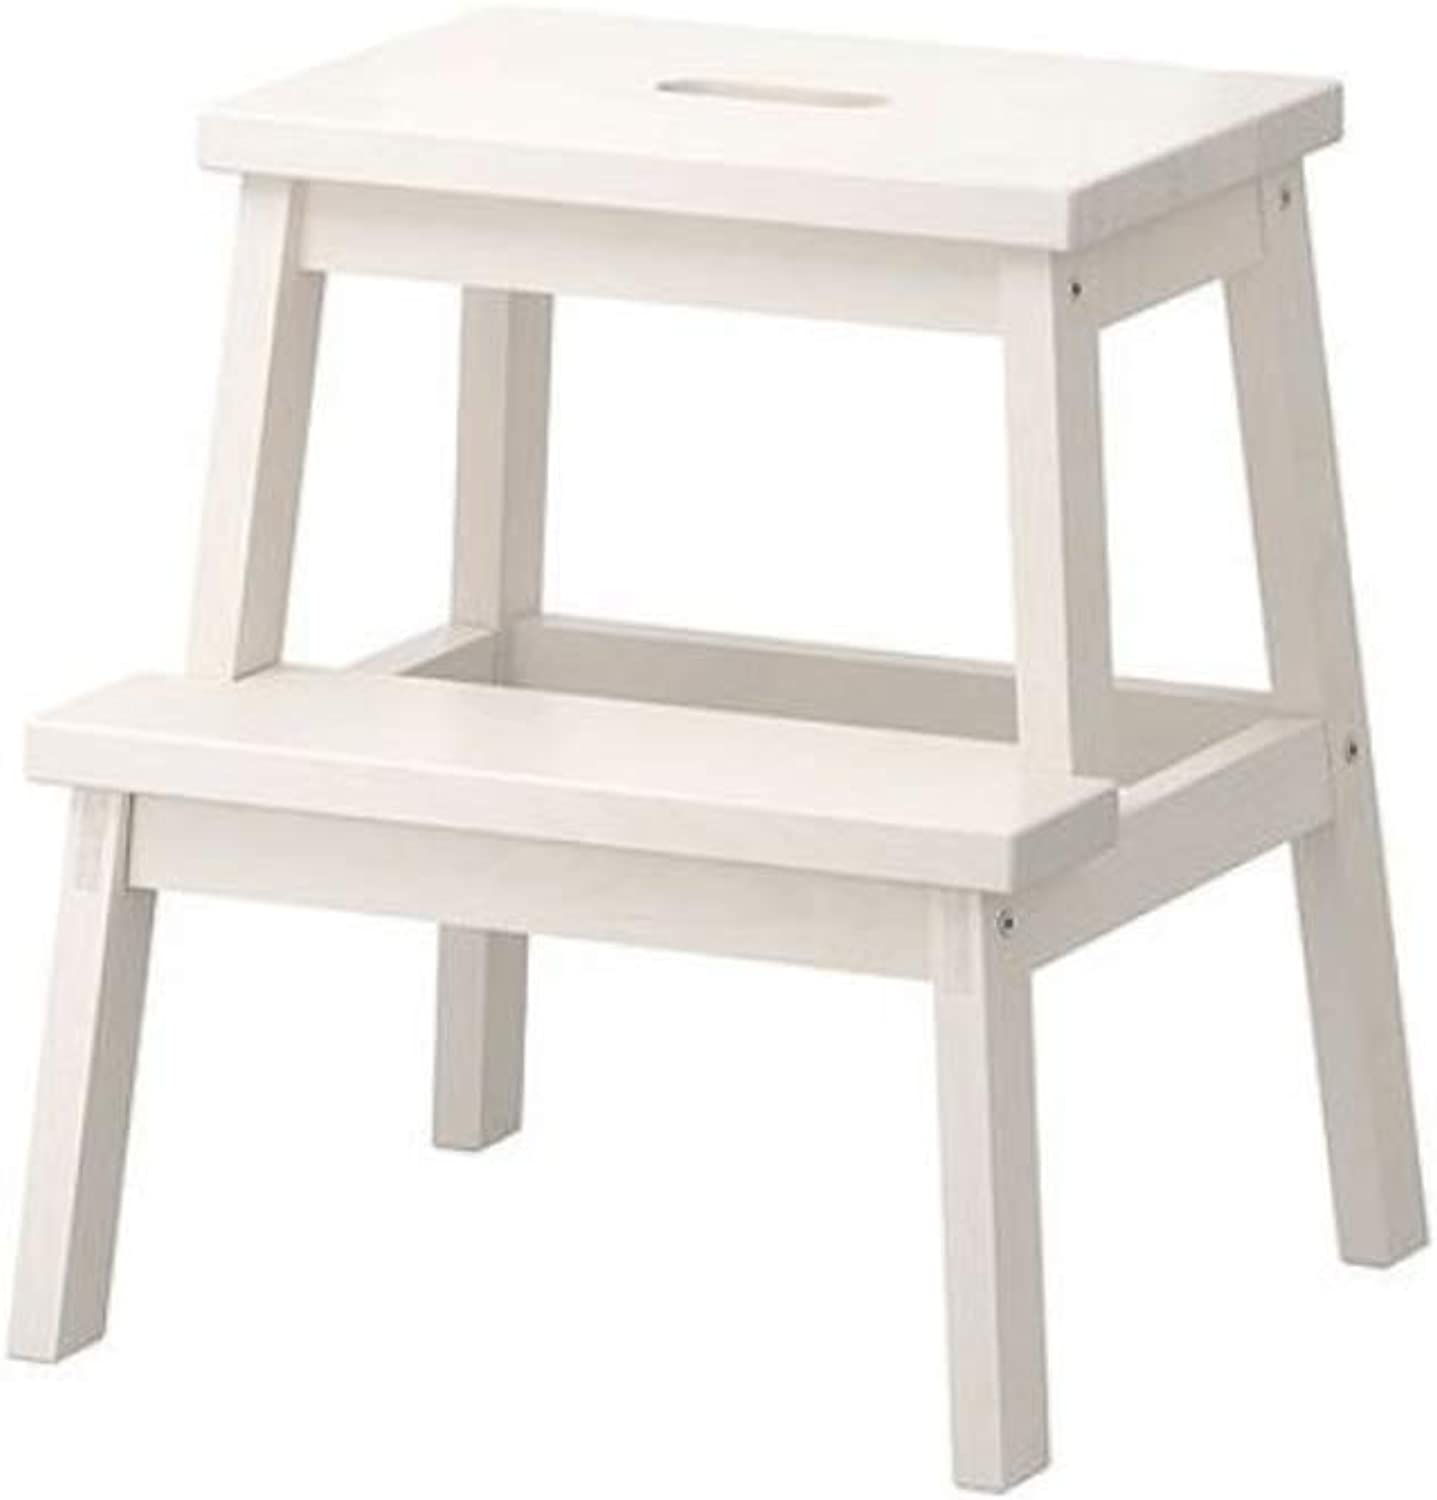 Multifunctional Solid Wood shoes Bench Step Stool Climbing Ladder Foot 2 Layer Small Bench Coffee Table Rack (color   White)